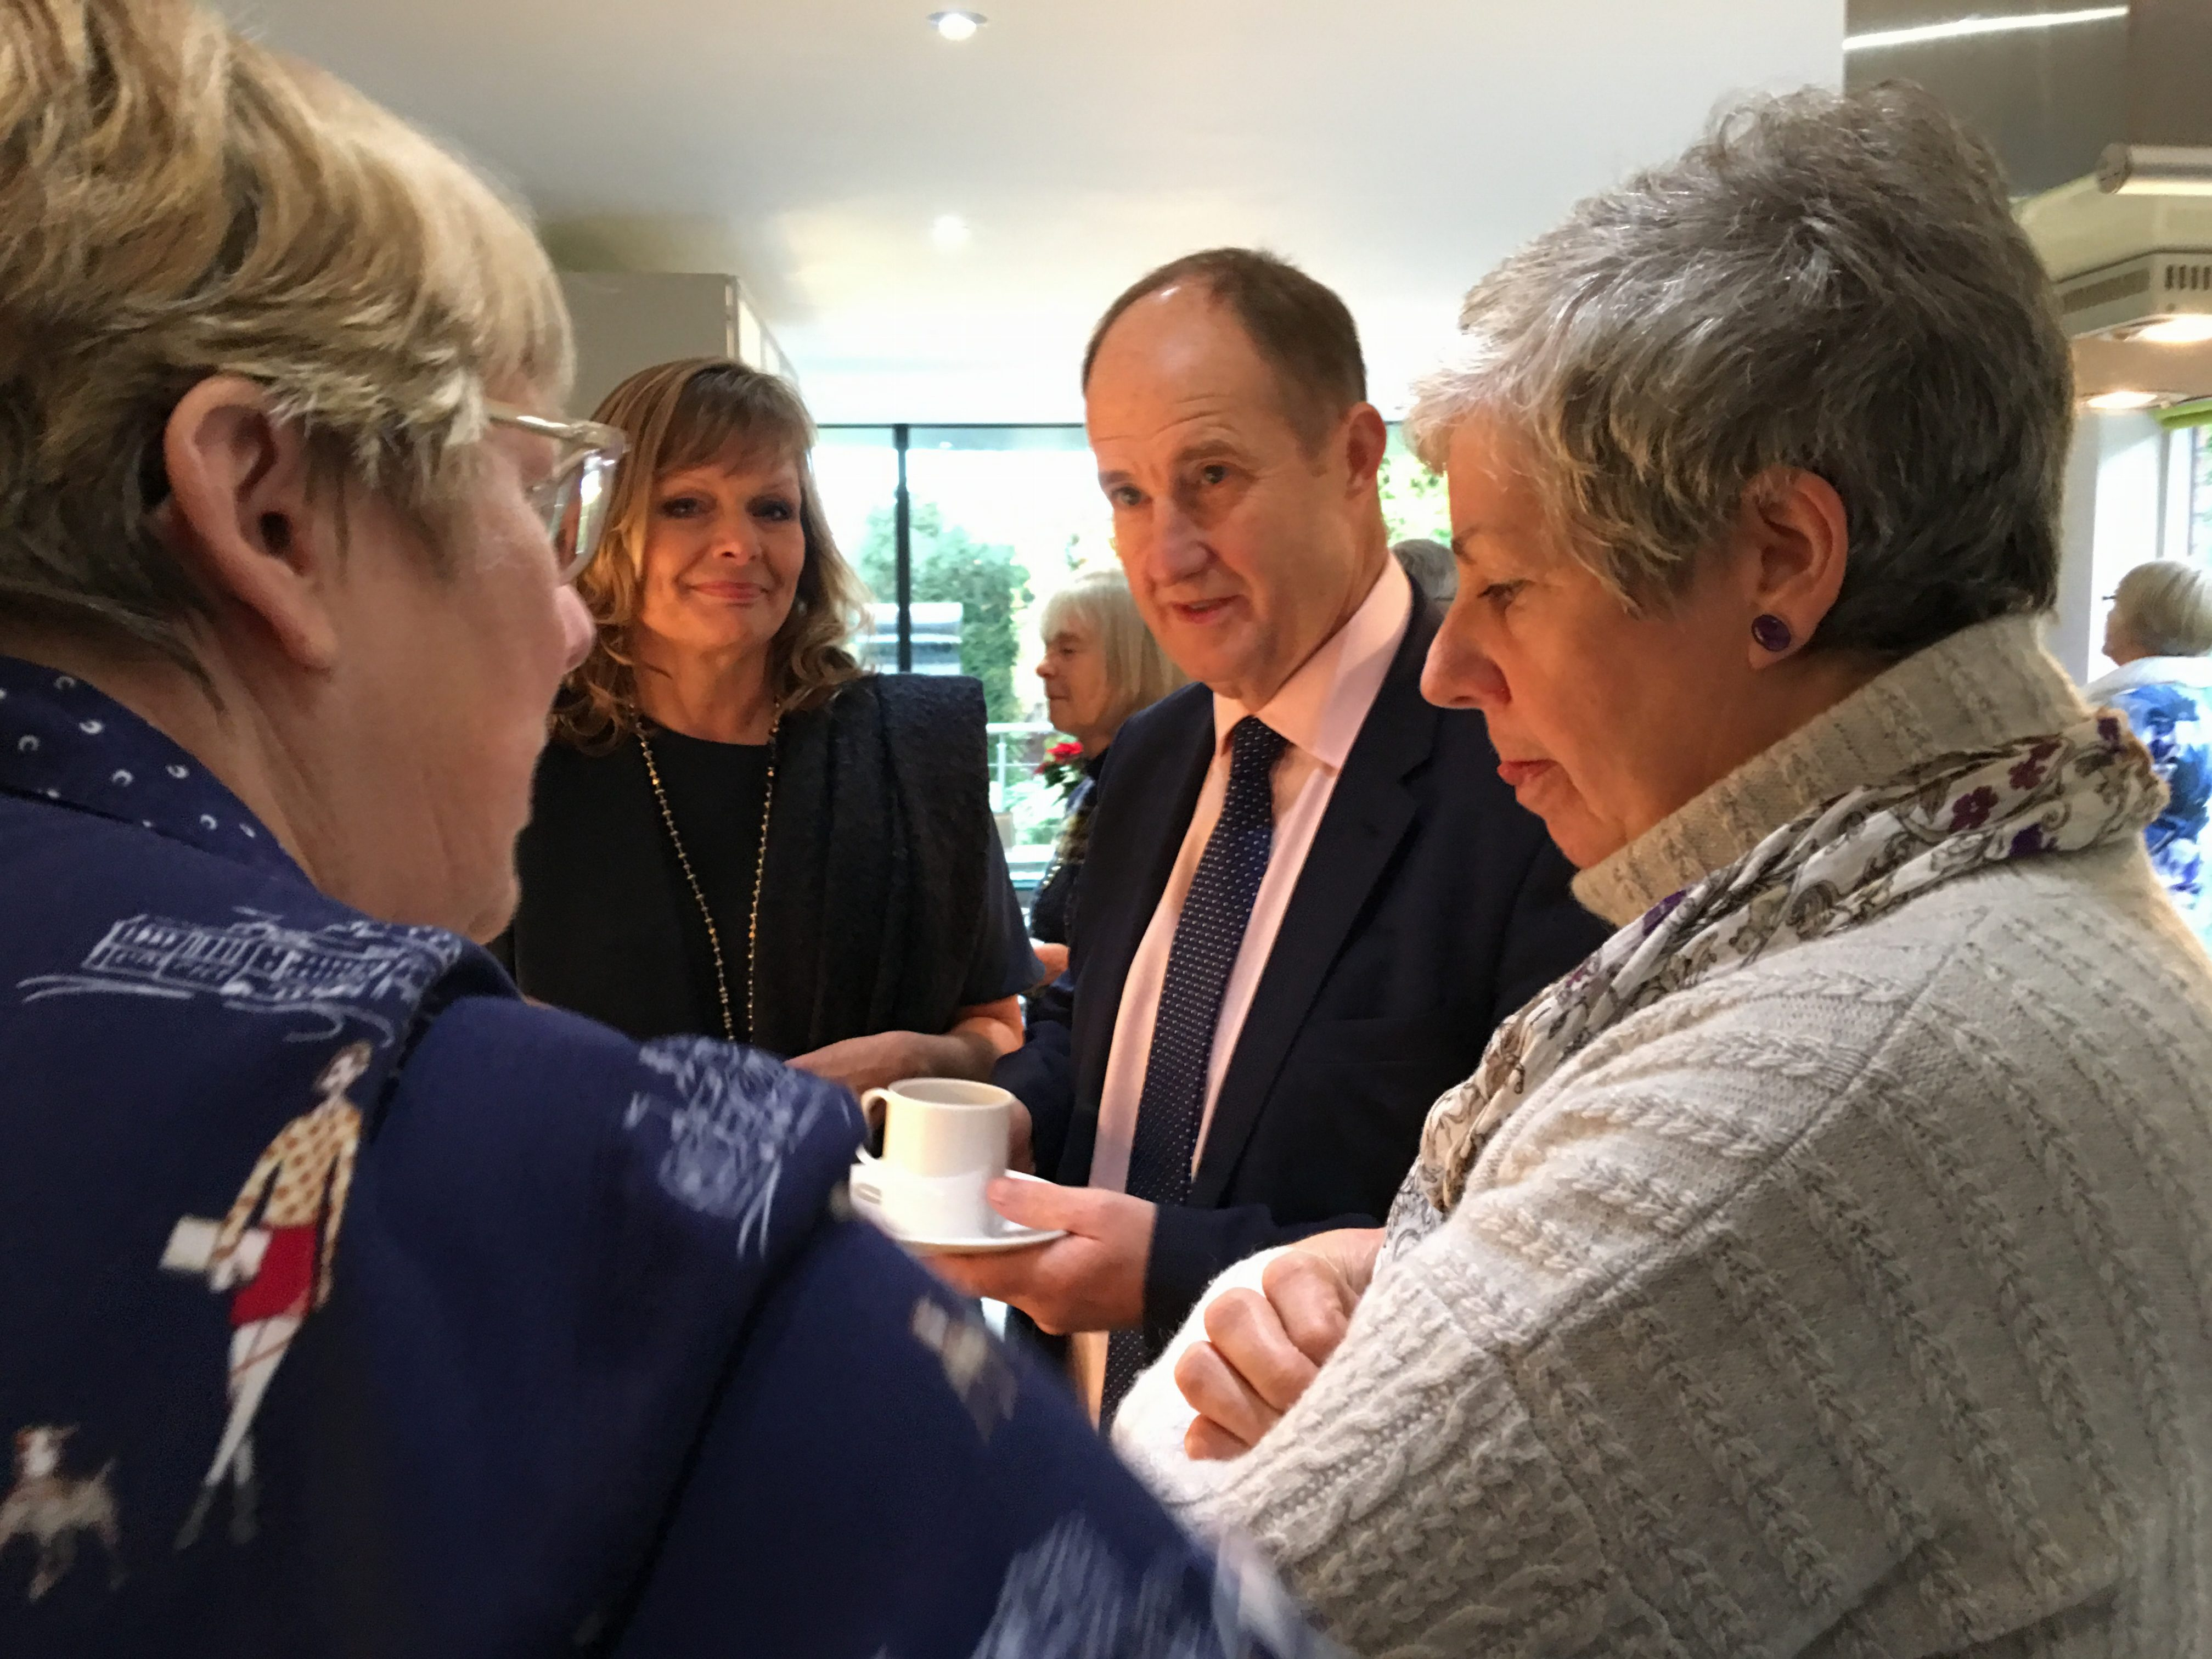 Kevin Hollinrake MP and wife Nikki with other guests at a 2016 GBTP